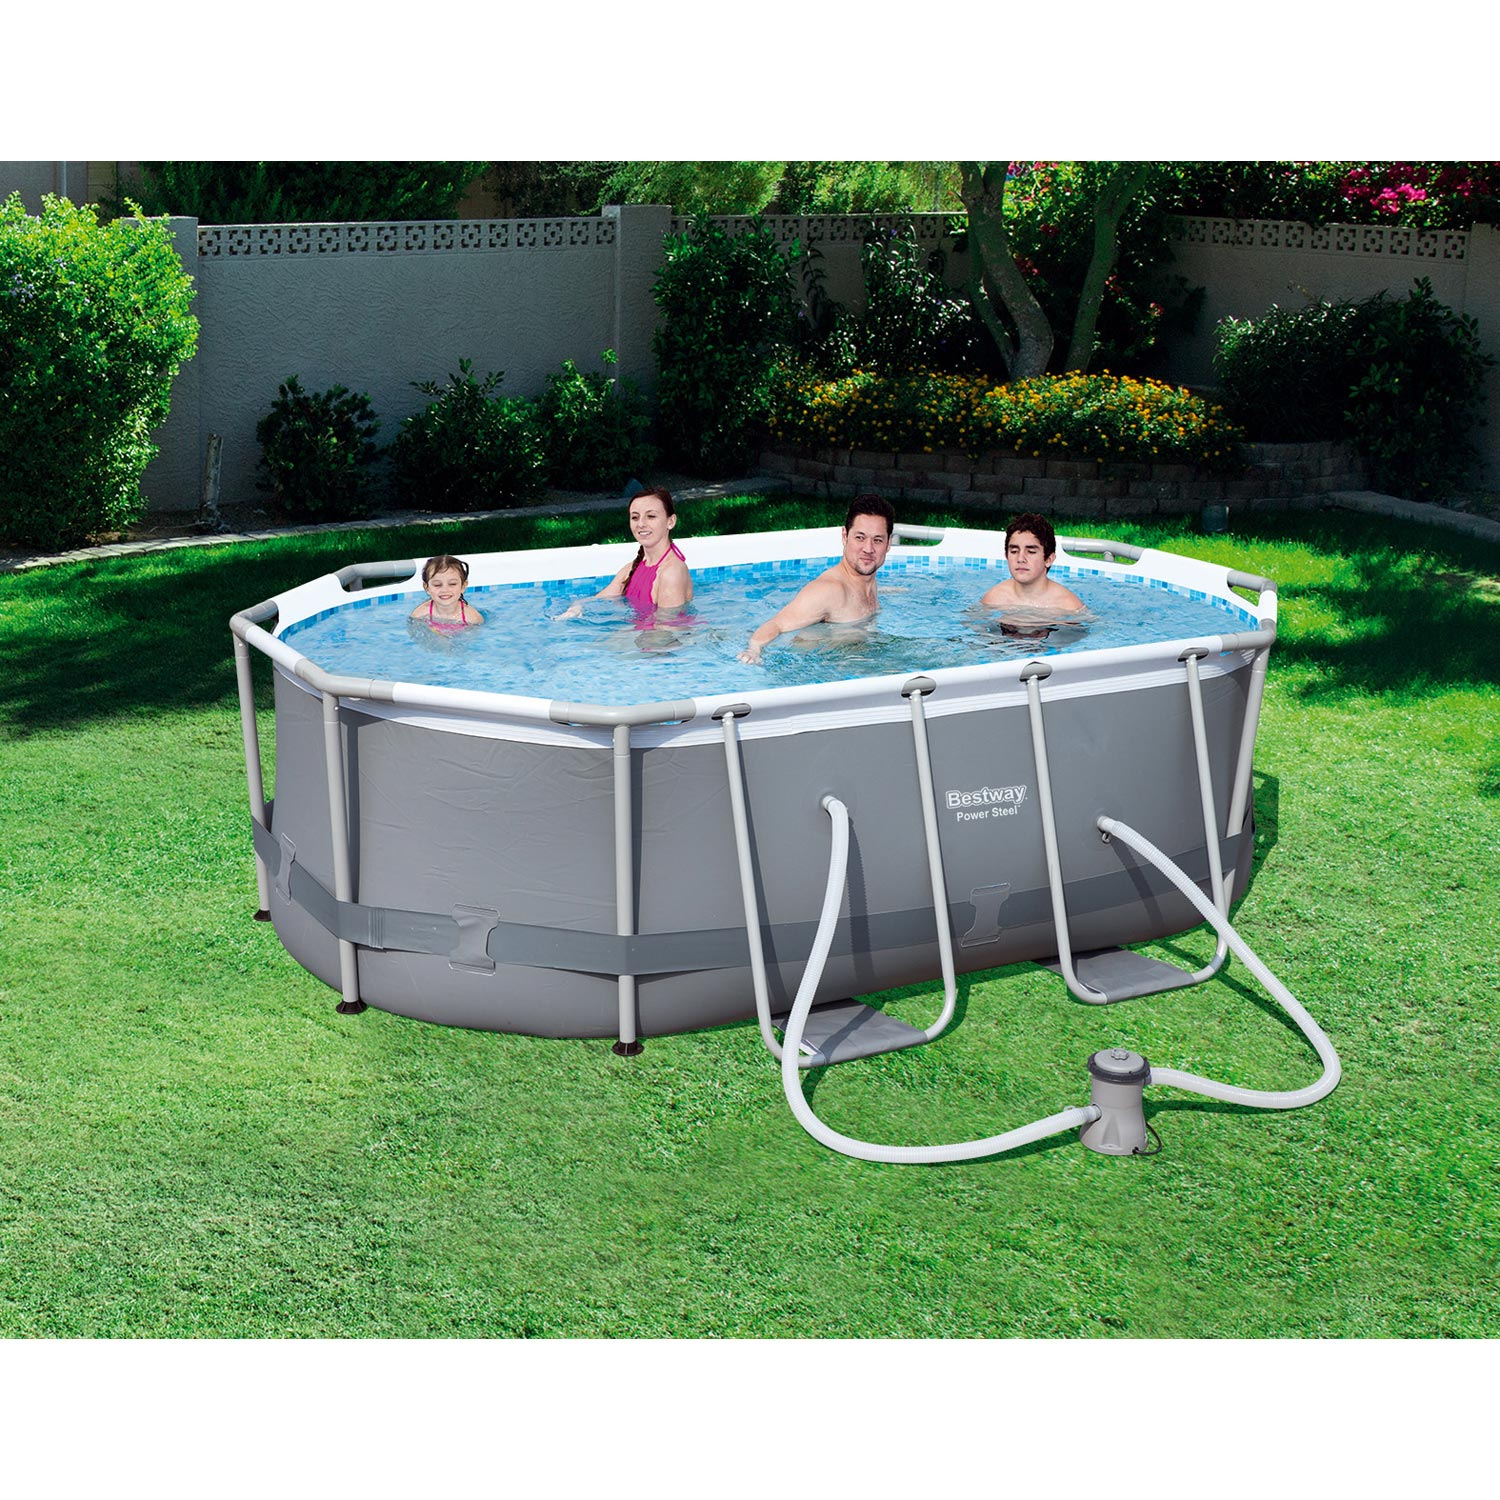 Piscine hors sol autoportante tubulaire bestway l 3 x l 2 for Piscine hors sol couverte